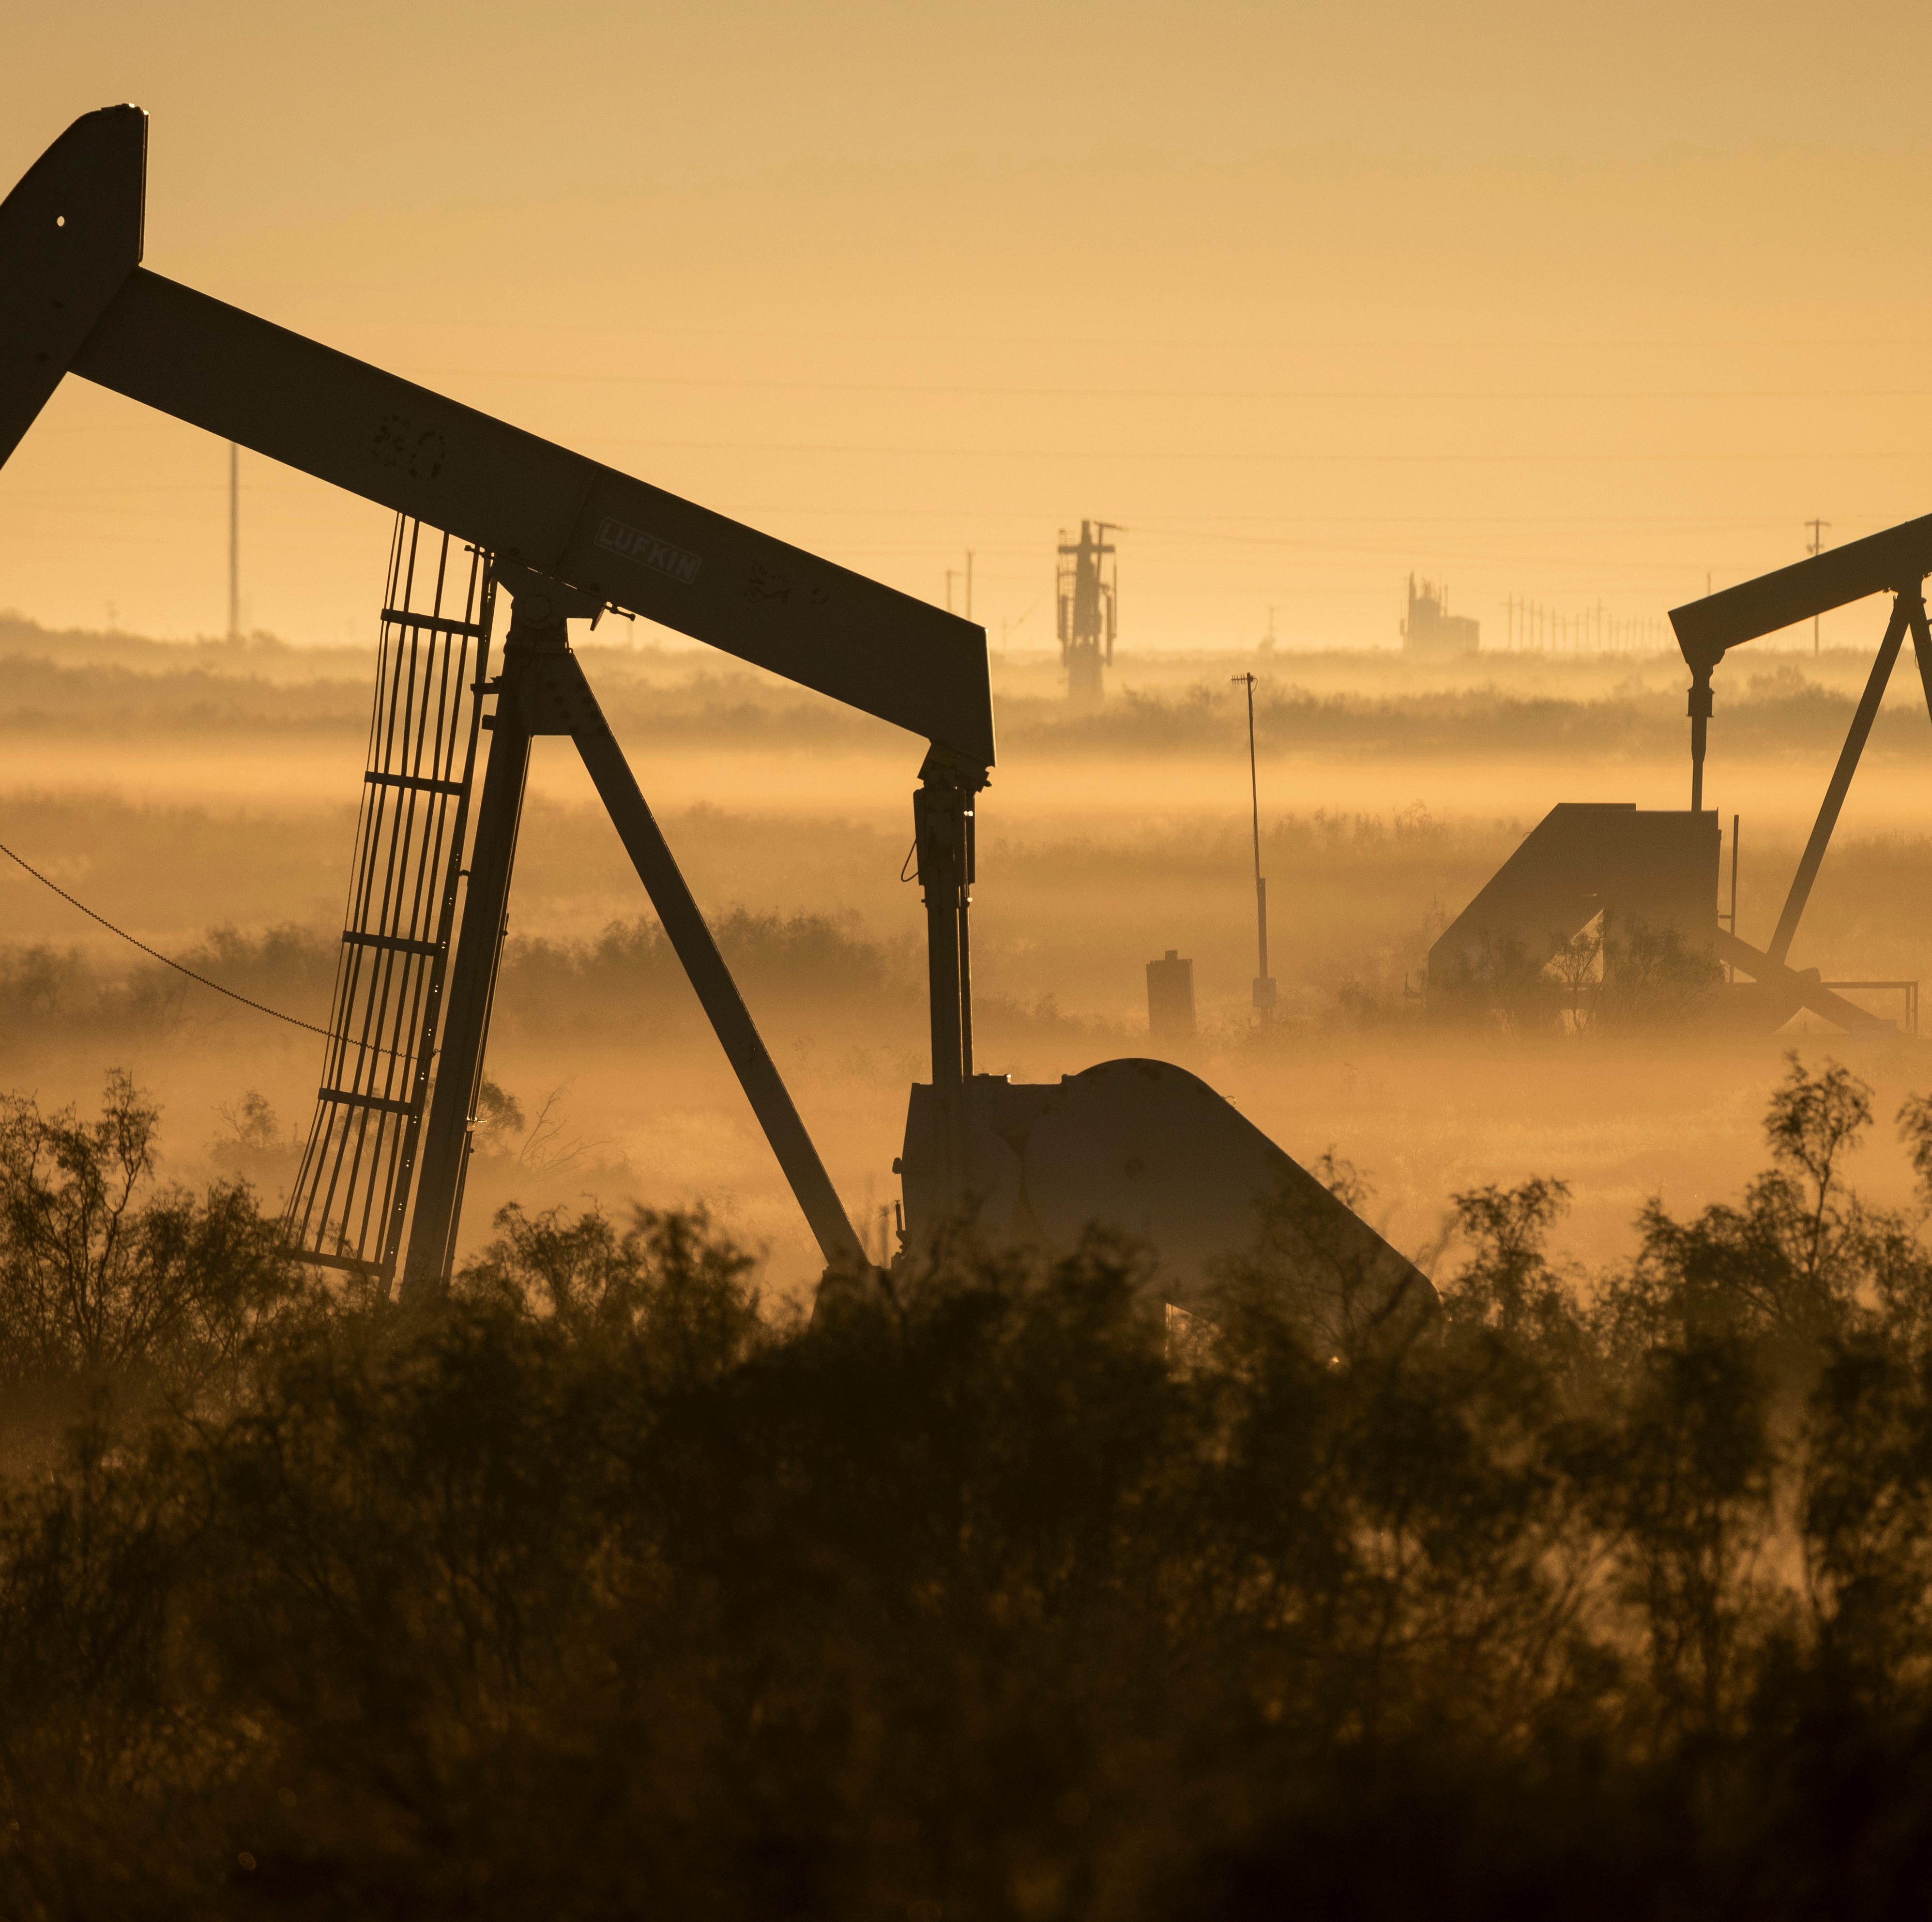 West Texas an 'extraction colony' as oil, gas exports surge